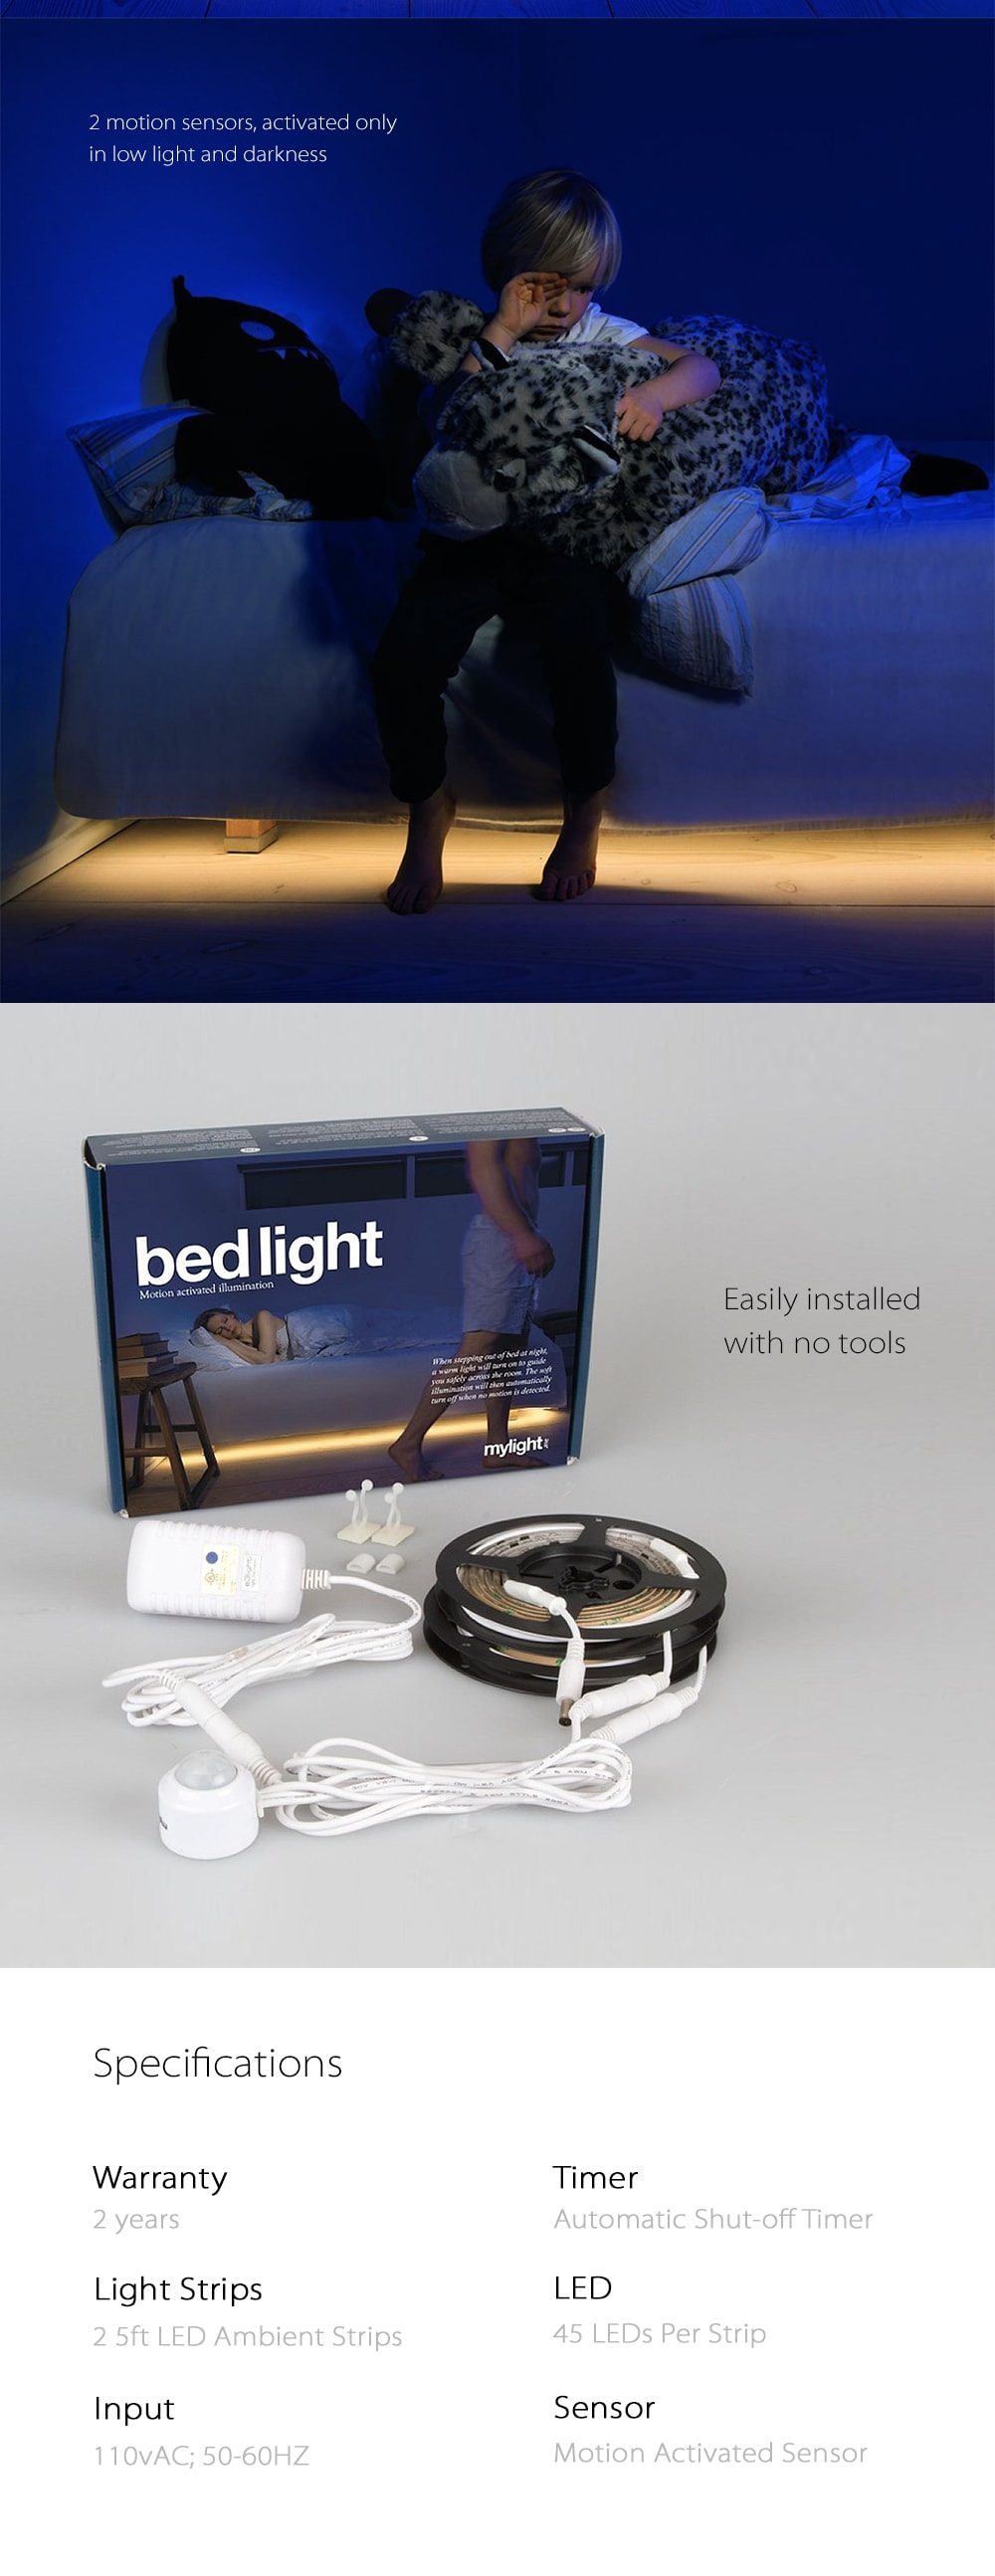 Motion Activated Bedlight Provide Comfort And Safety In Your Home